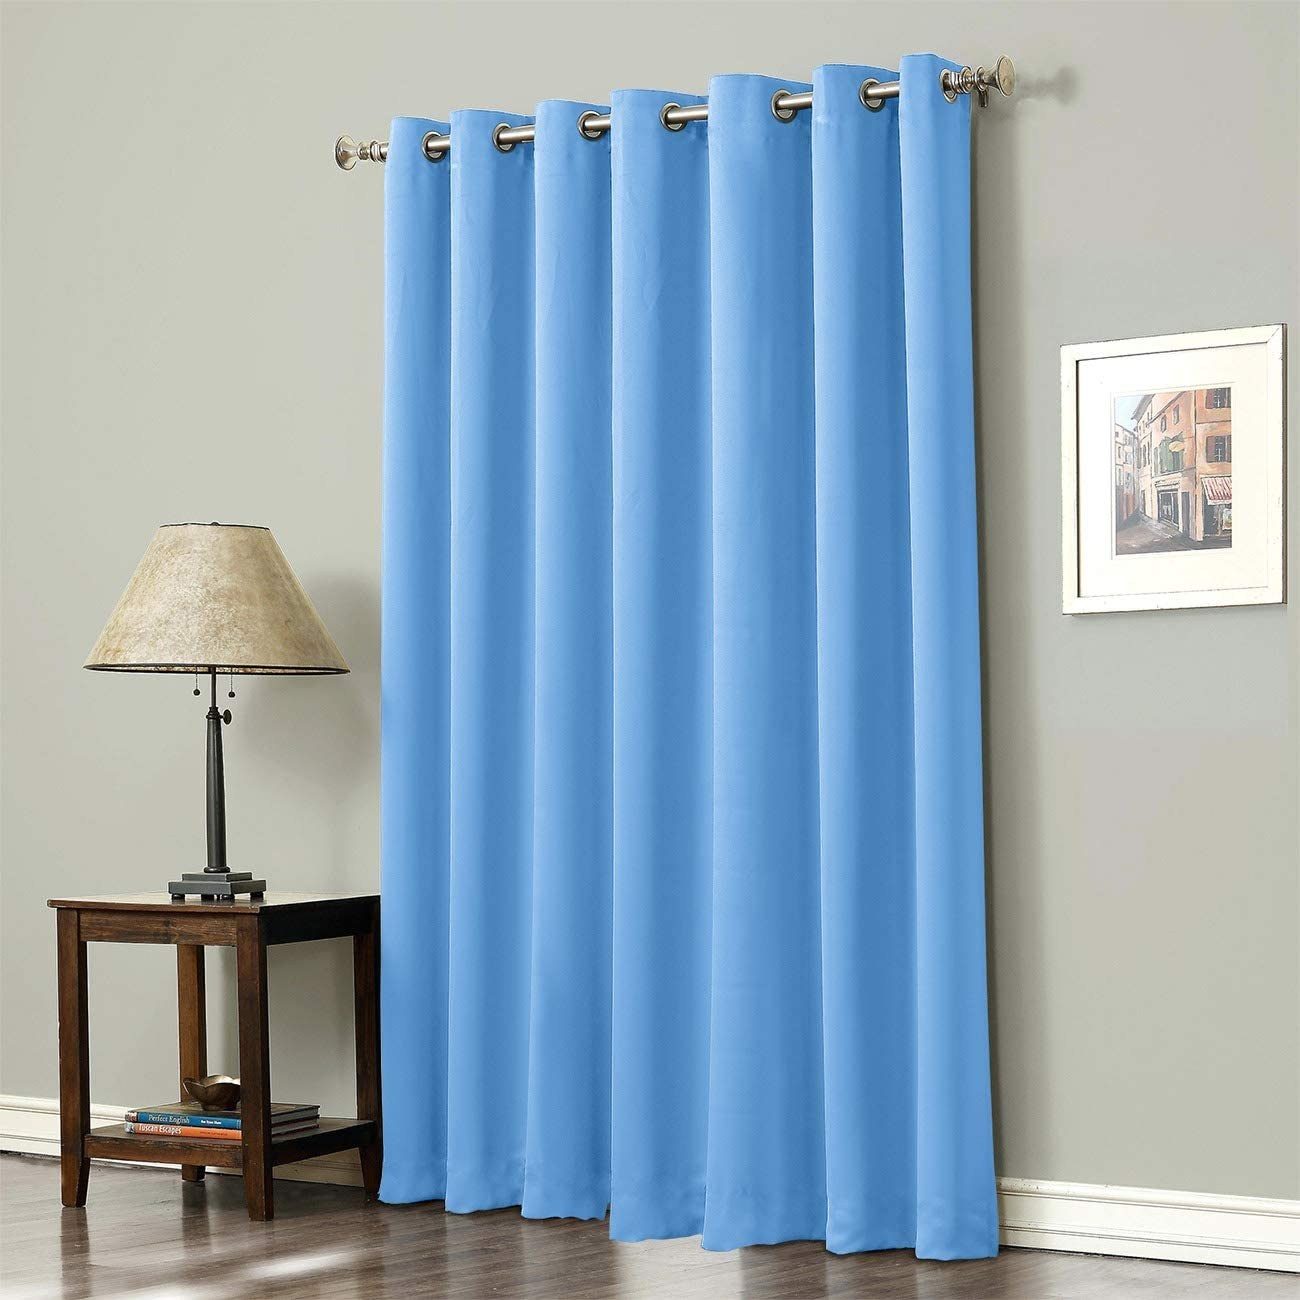 Darlicent Grommet Top Blackout Curtains Thermal Insulated Light Blocking Drapery Panels for Living Room Bedroom Curtains 1 Panel 52×96 Inch, Minimalist Solid Color Blue